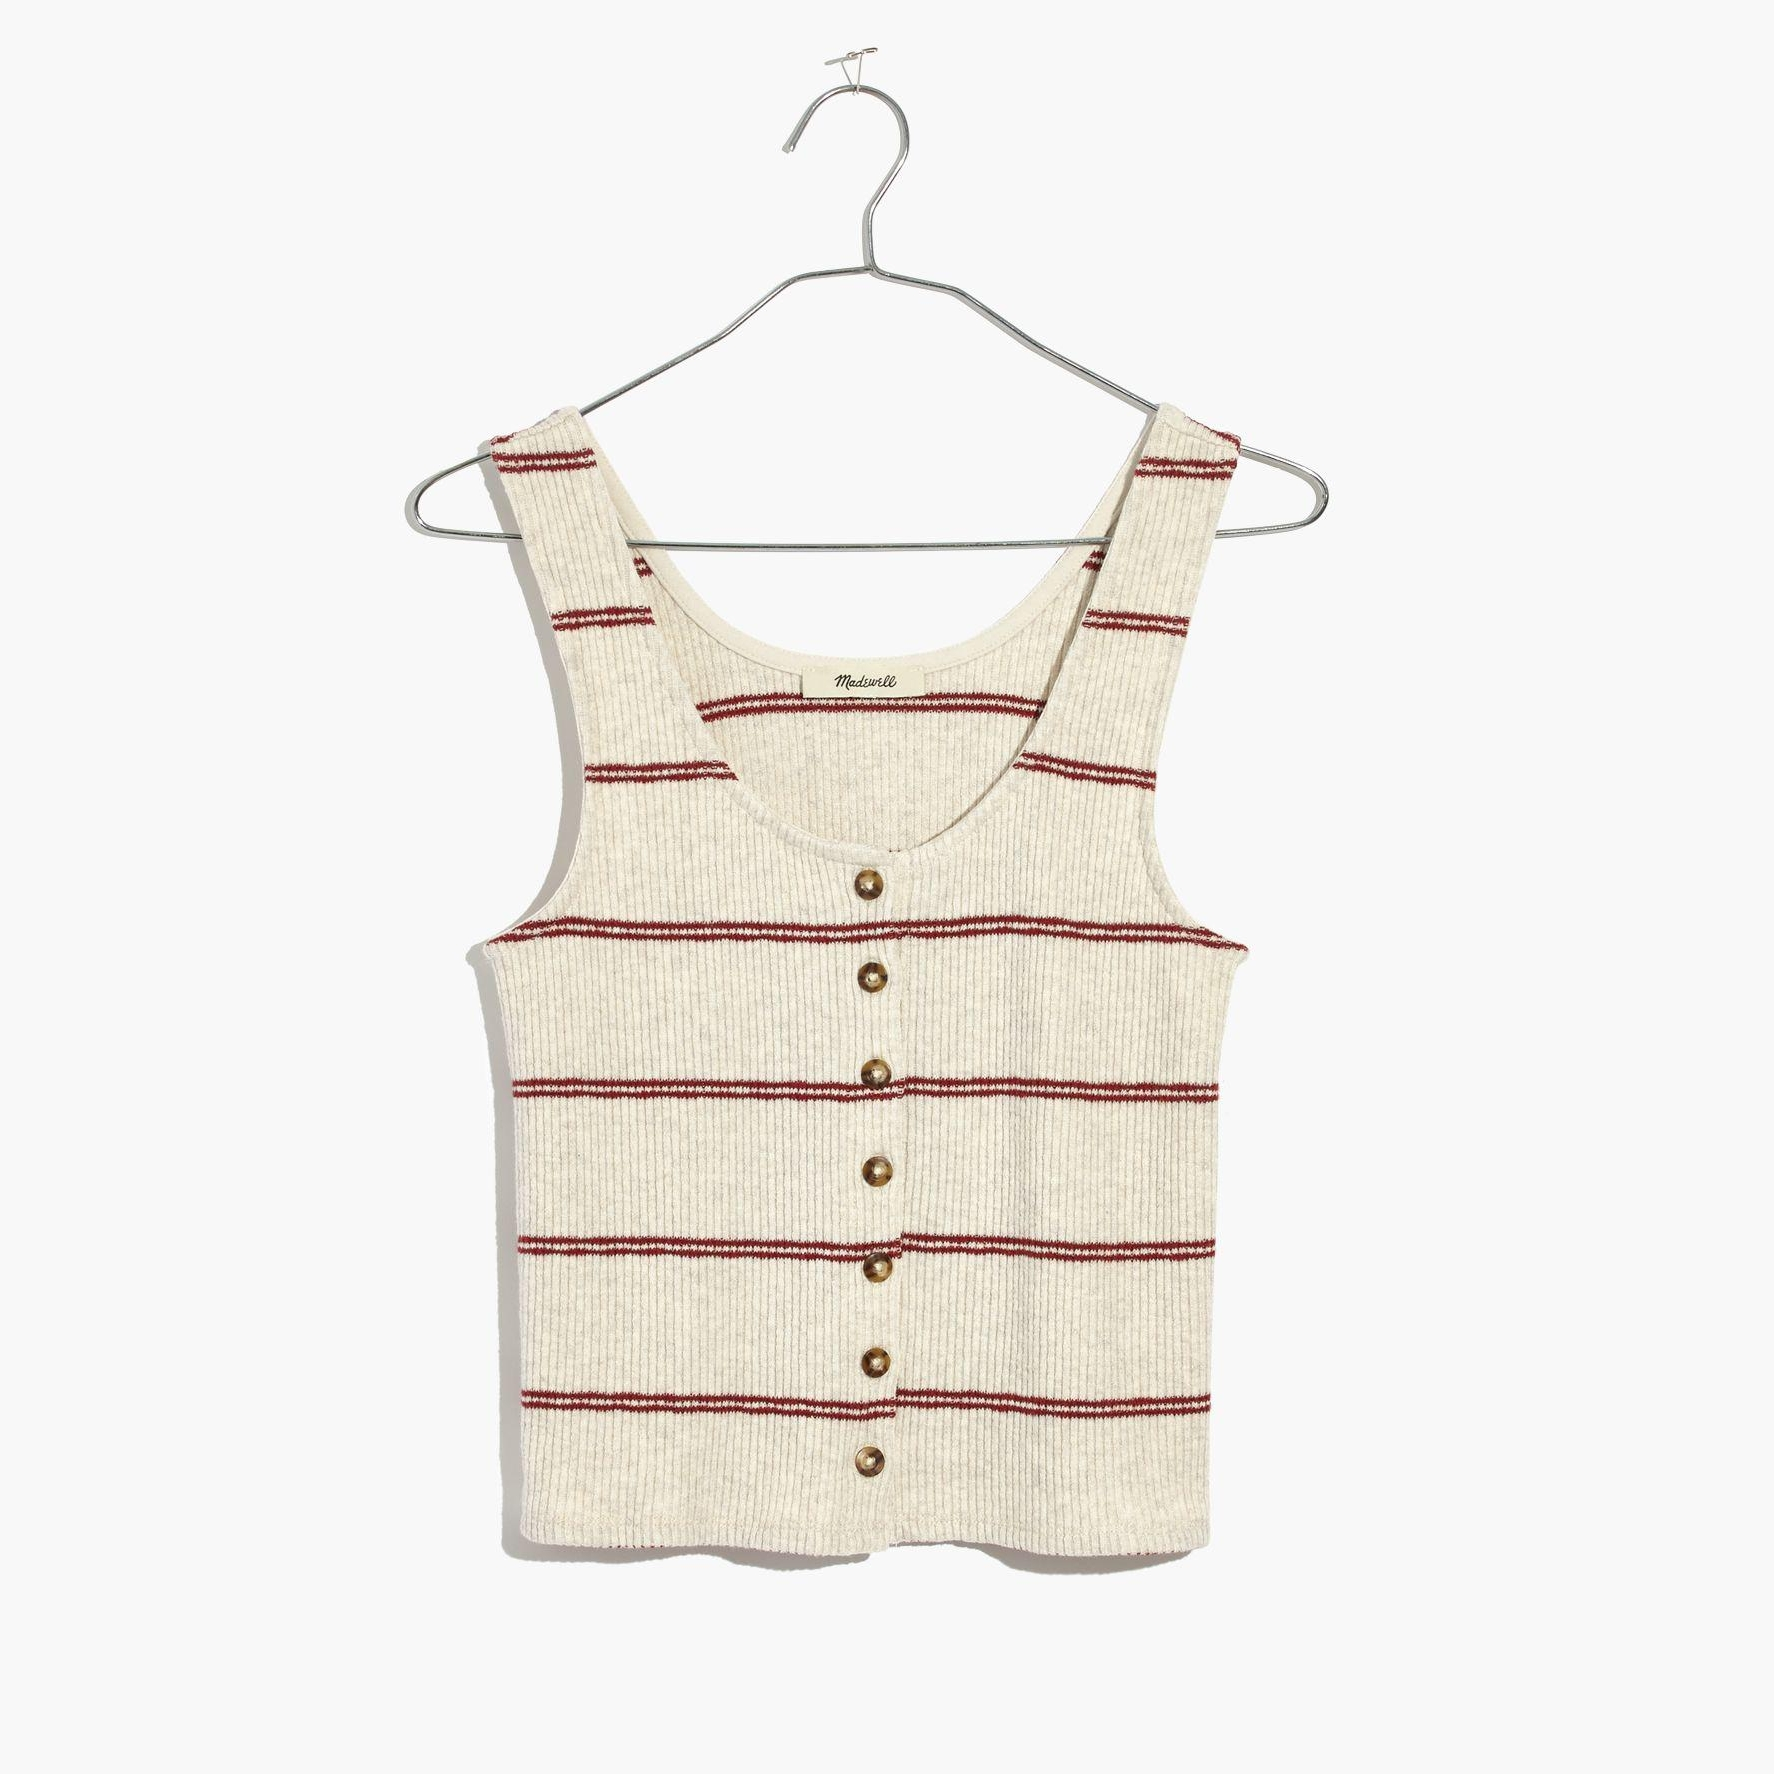 madewell-heather-muslin-Ribbed-Button-front-Tank-Top-In-Stripe.jpeg